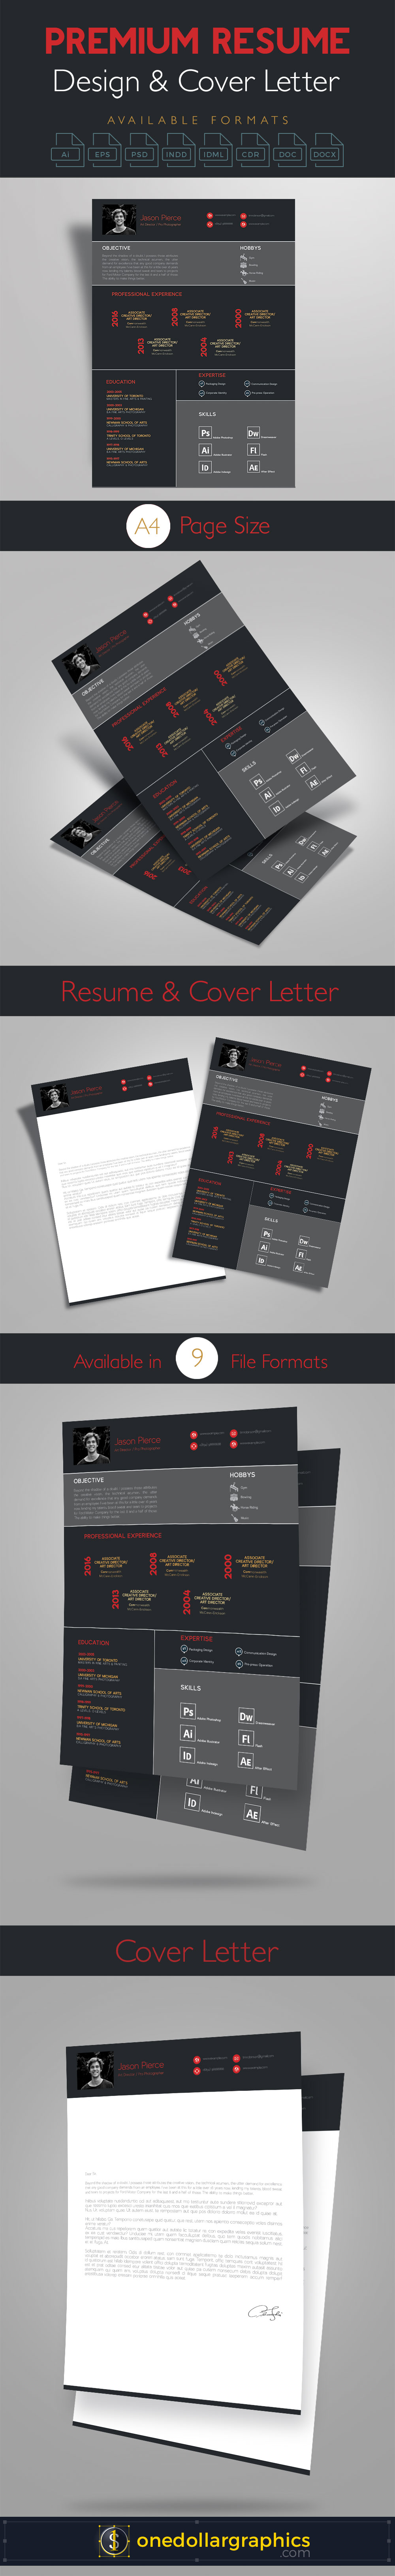 free cover letter templates for resumes Premium